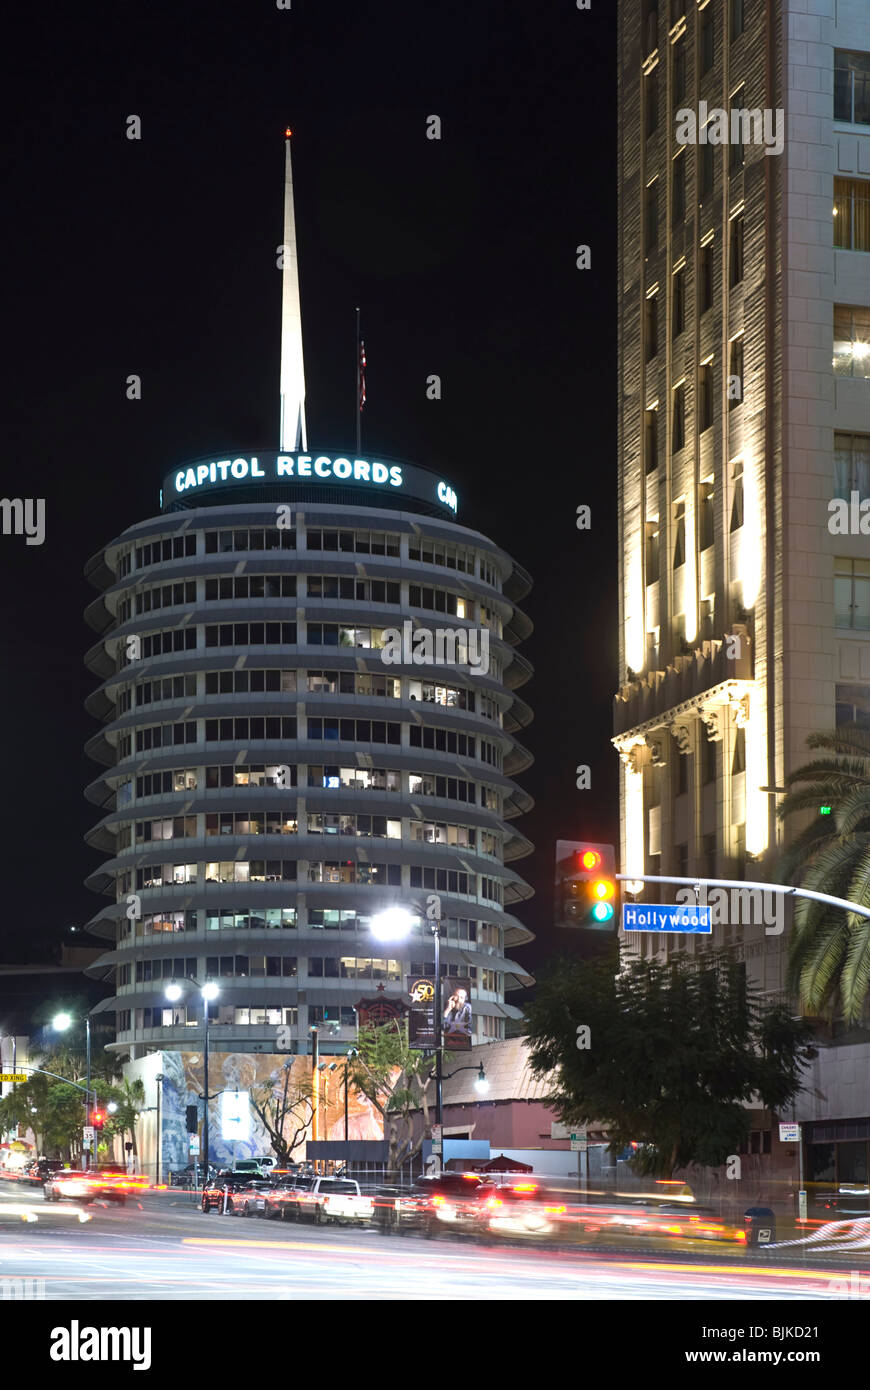 The Capitol Records building on Hollywood Boulevard, Hollywood, California, USA (Night View) - Stock Image